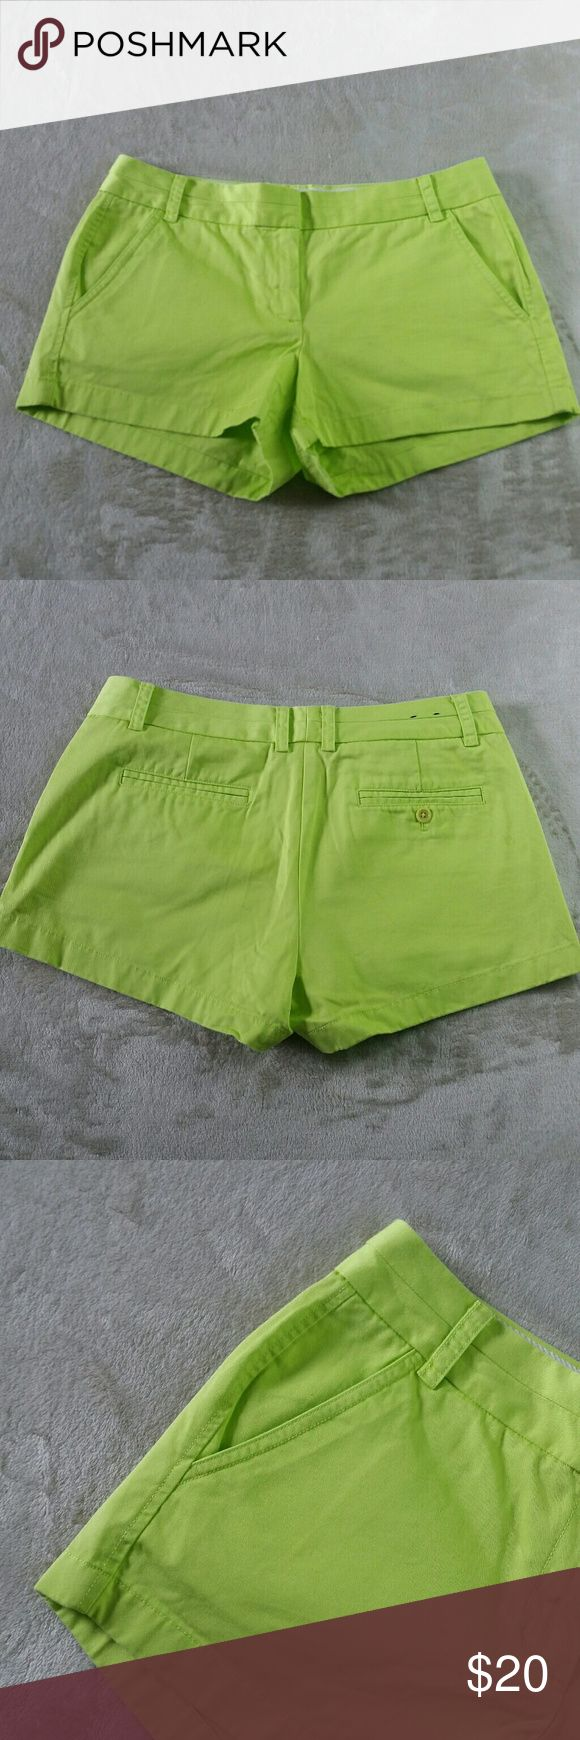 """Fluorescent green shorts fluorescent lime green chino shorts. Size 8, in like new condition worn one time. 100% cotton, full zip and button closure, two front pockets.   Measurements waist 17"""" laying straight across rise 11"""" inseam 3"""" leg opening 11"""" jcrew  Shorts"""